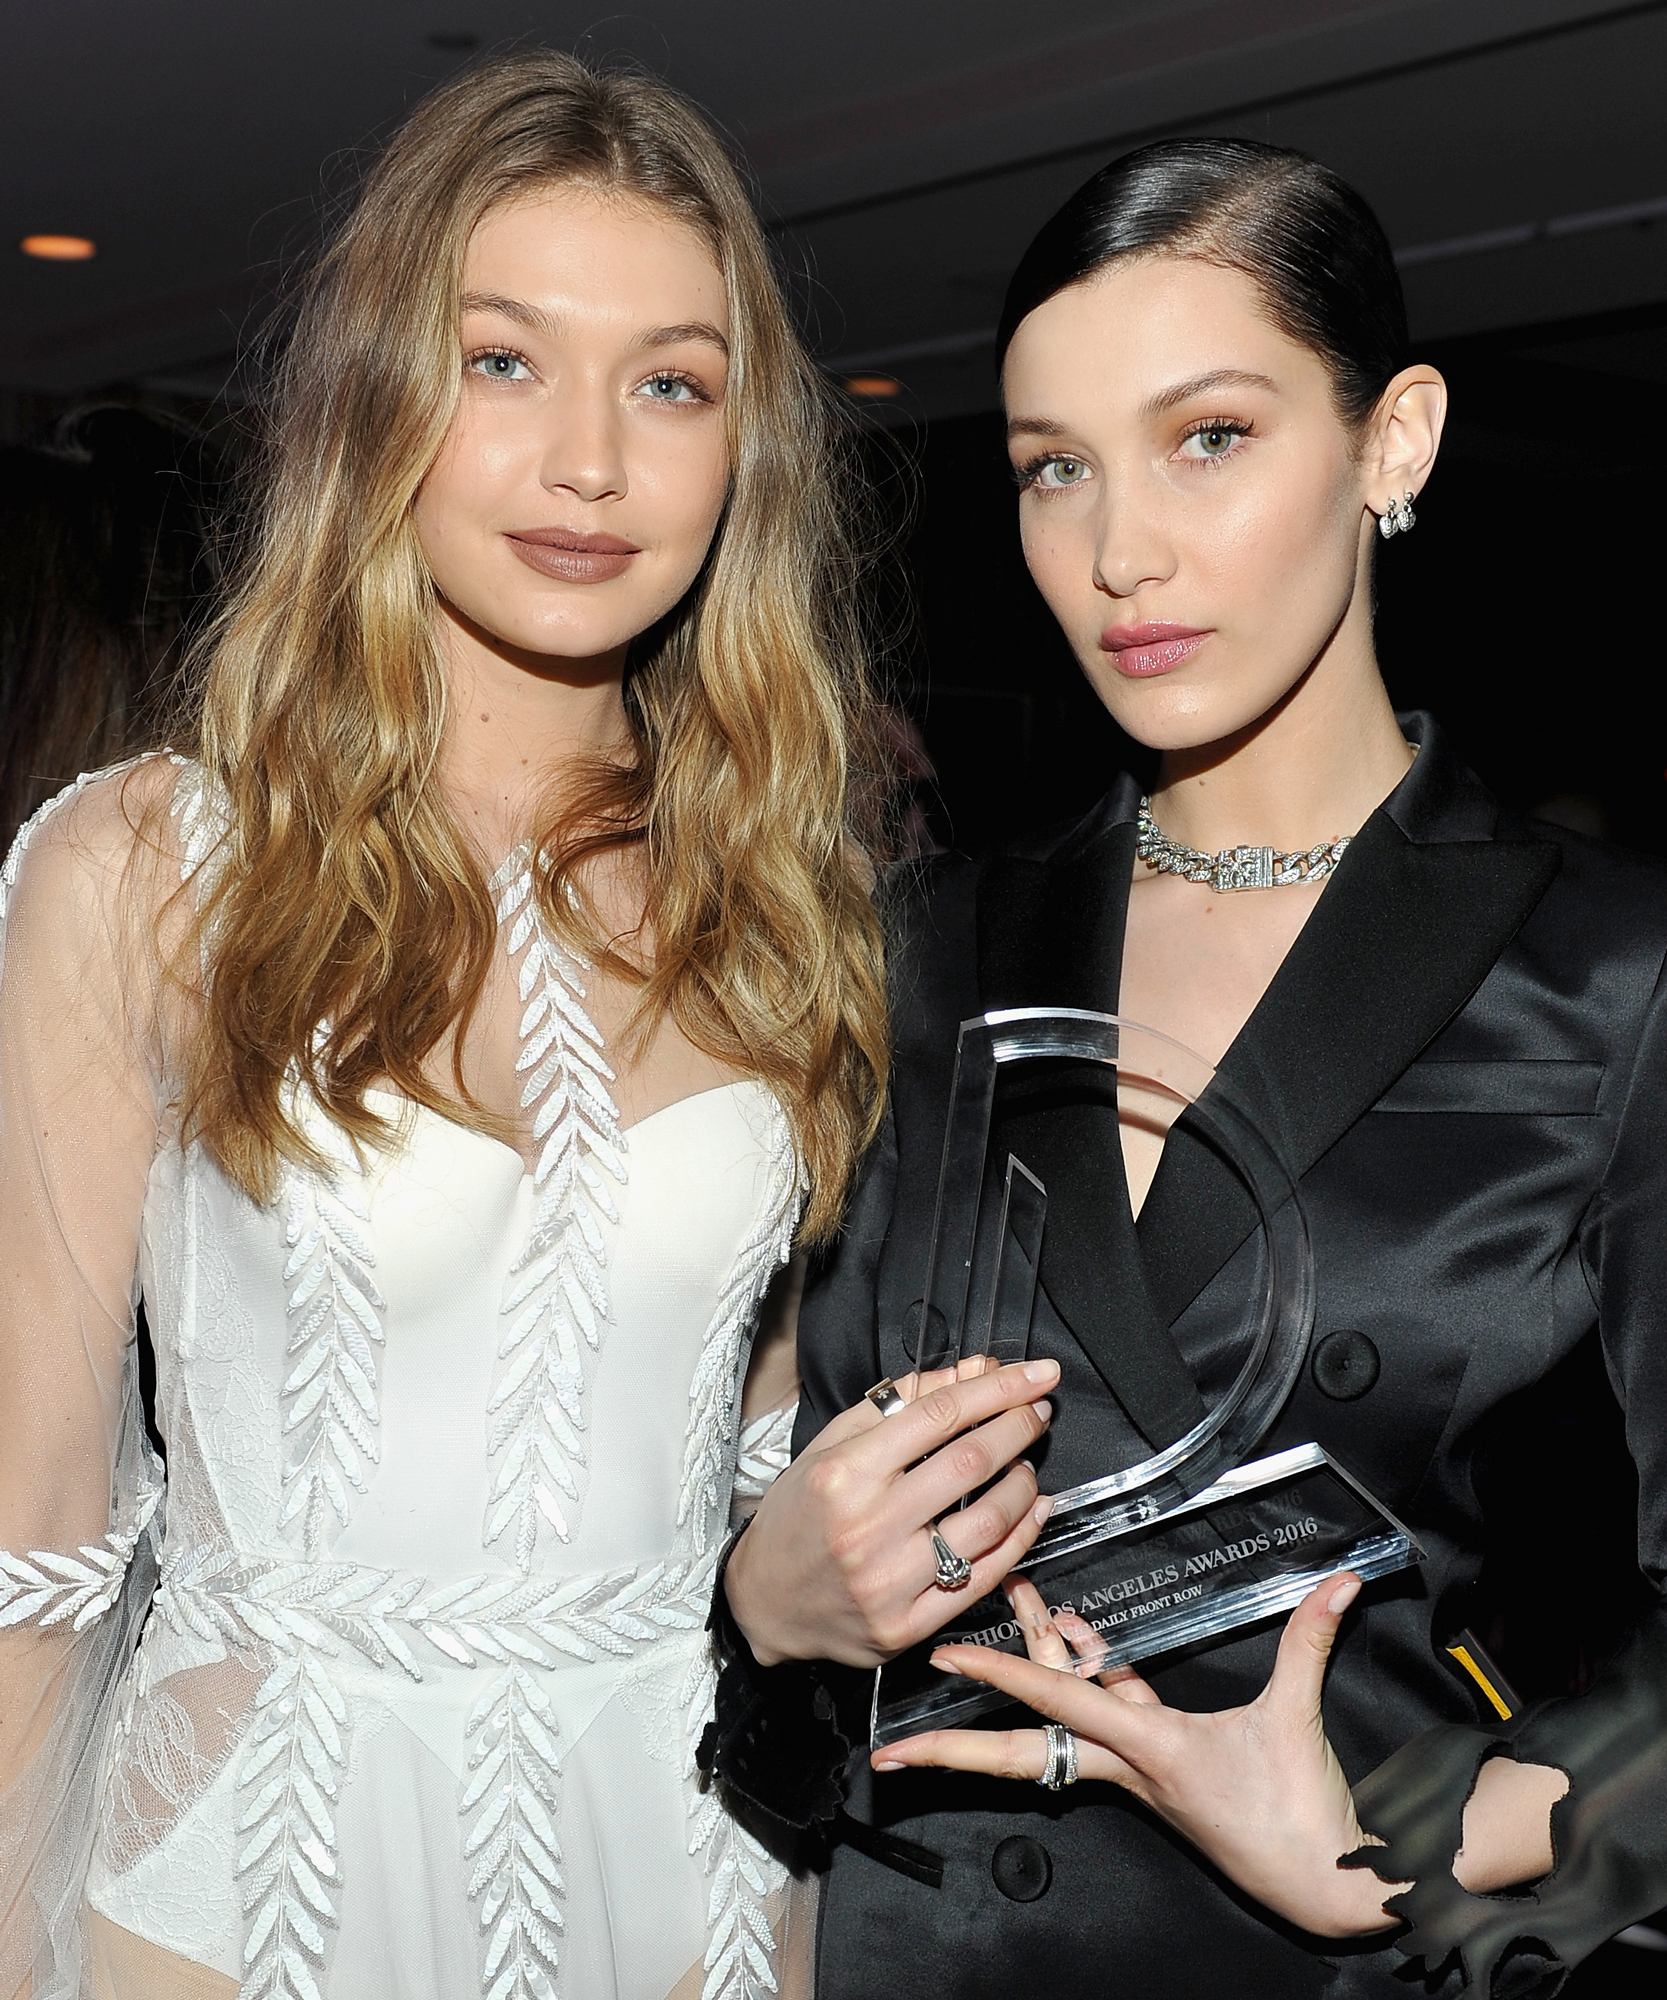 Models Gigi Hadid (L) and Bella Hadid, with her Model of the Year award, attend The Daily Front Row 'Fashion Los Angeles Awards' 2016 at Sunset Tower Hotel on March 20, 2016 in West Hollywood, California.